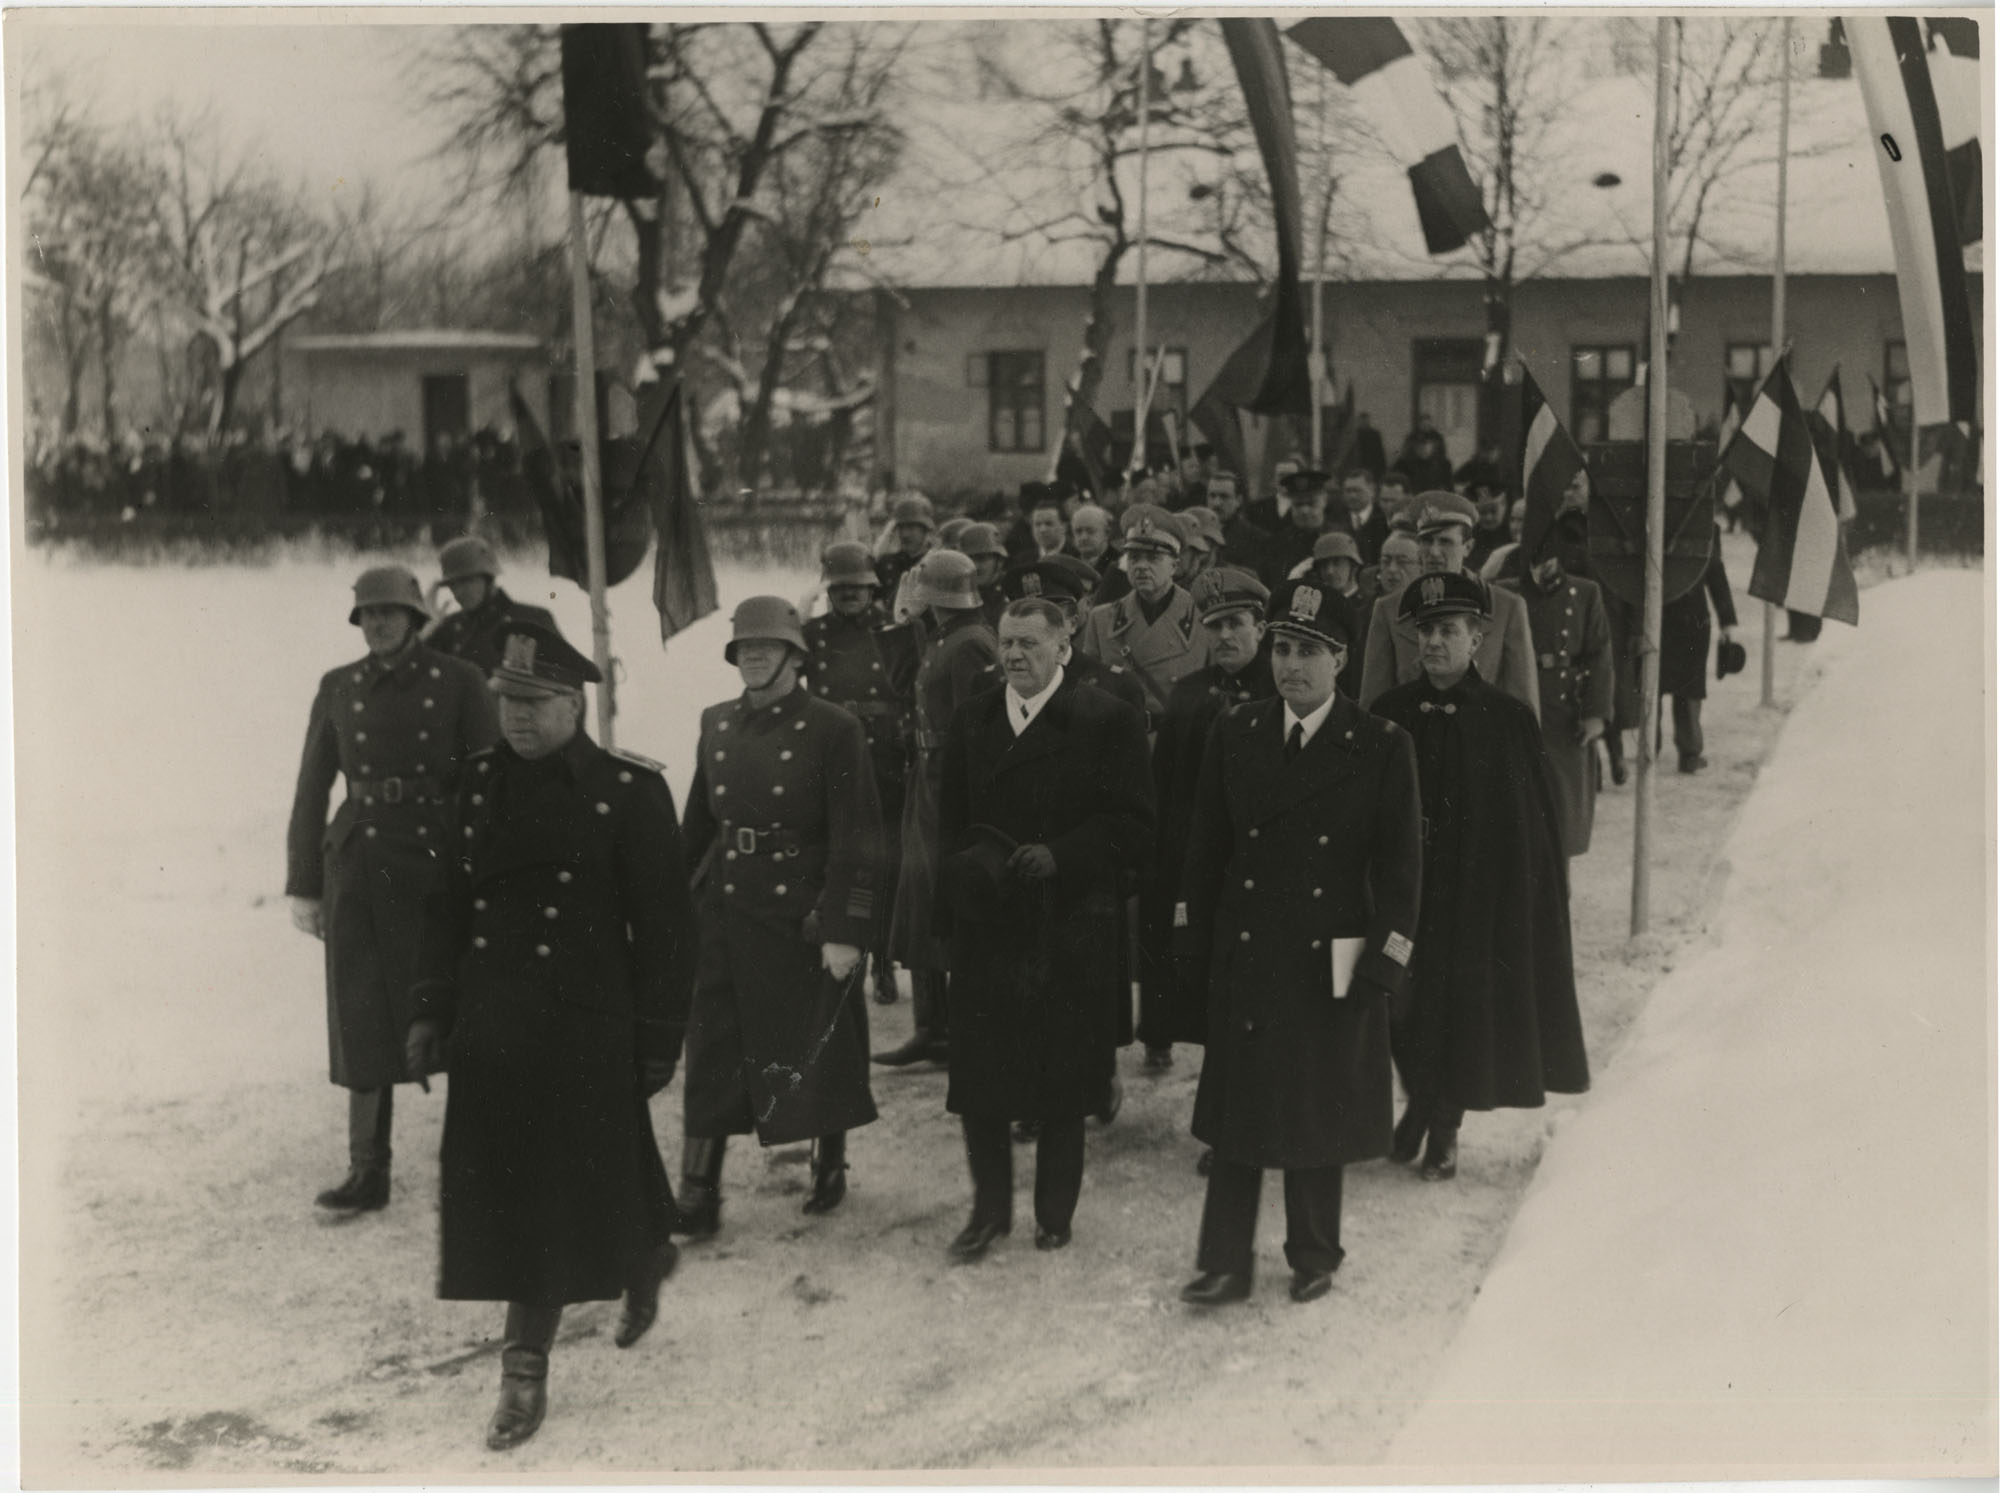 Mario Pansa and military officials in Budapest, Hungary, Photograph 1